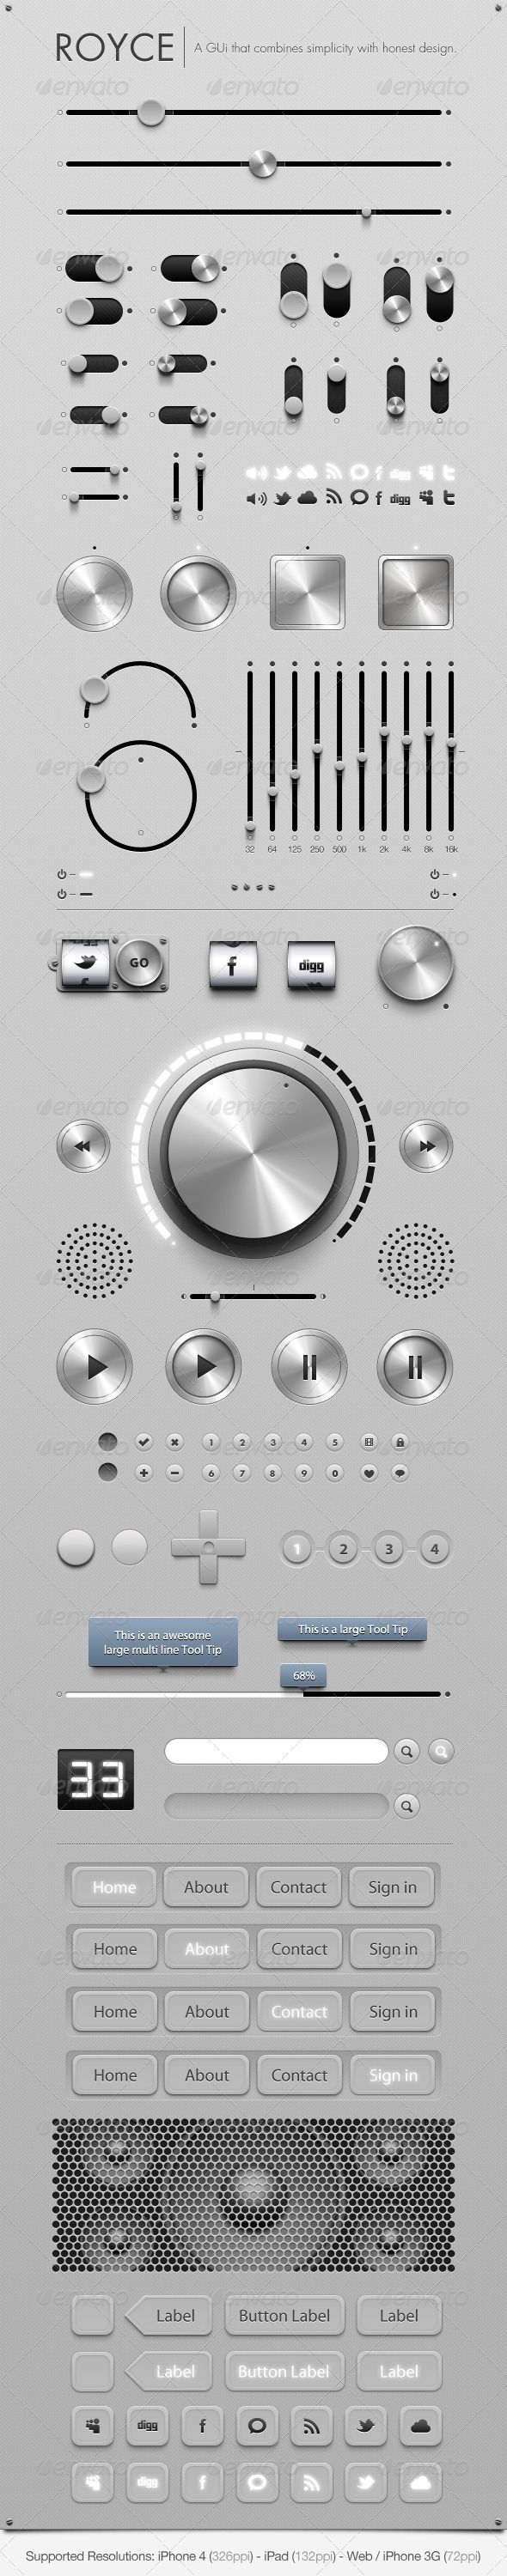 Royce - GUi - Graphical User Interface - GraphicRiver Item for Sale